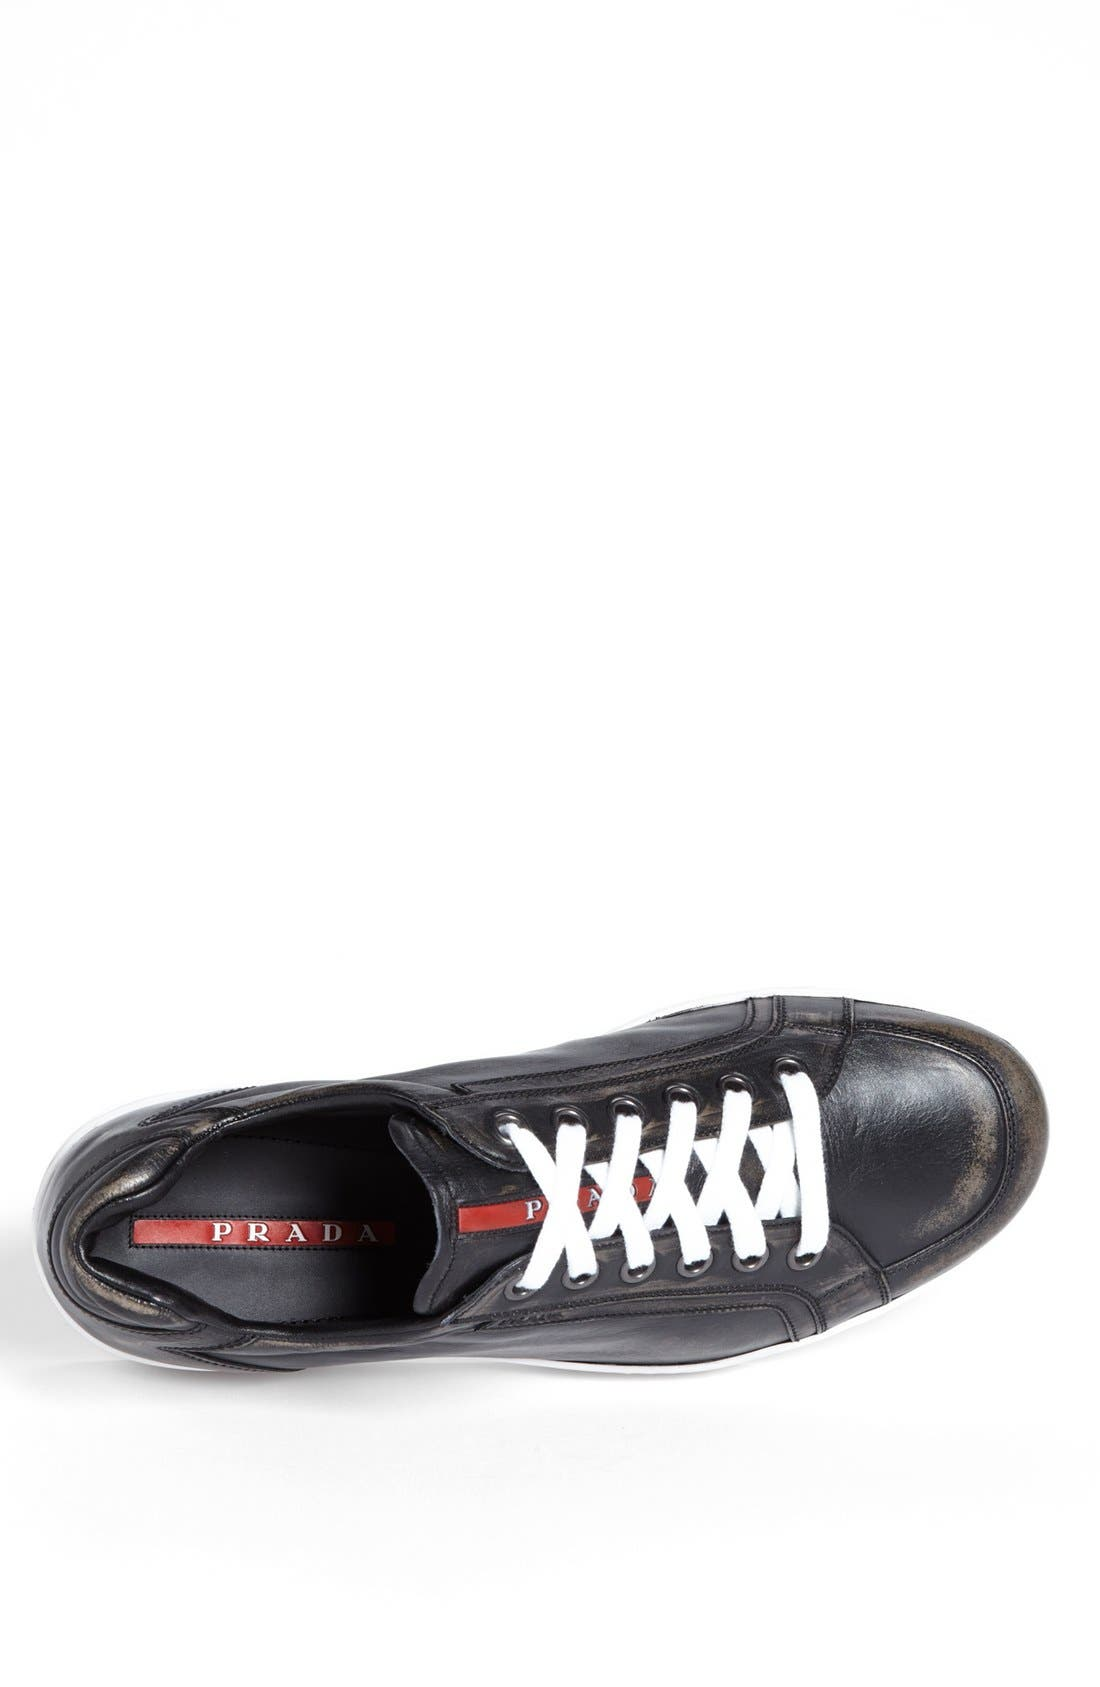 Alternate Image 3  - Prada 'Avenue' Sneaker